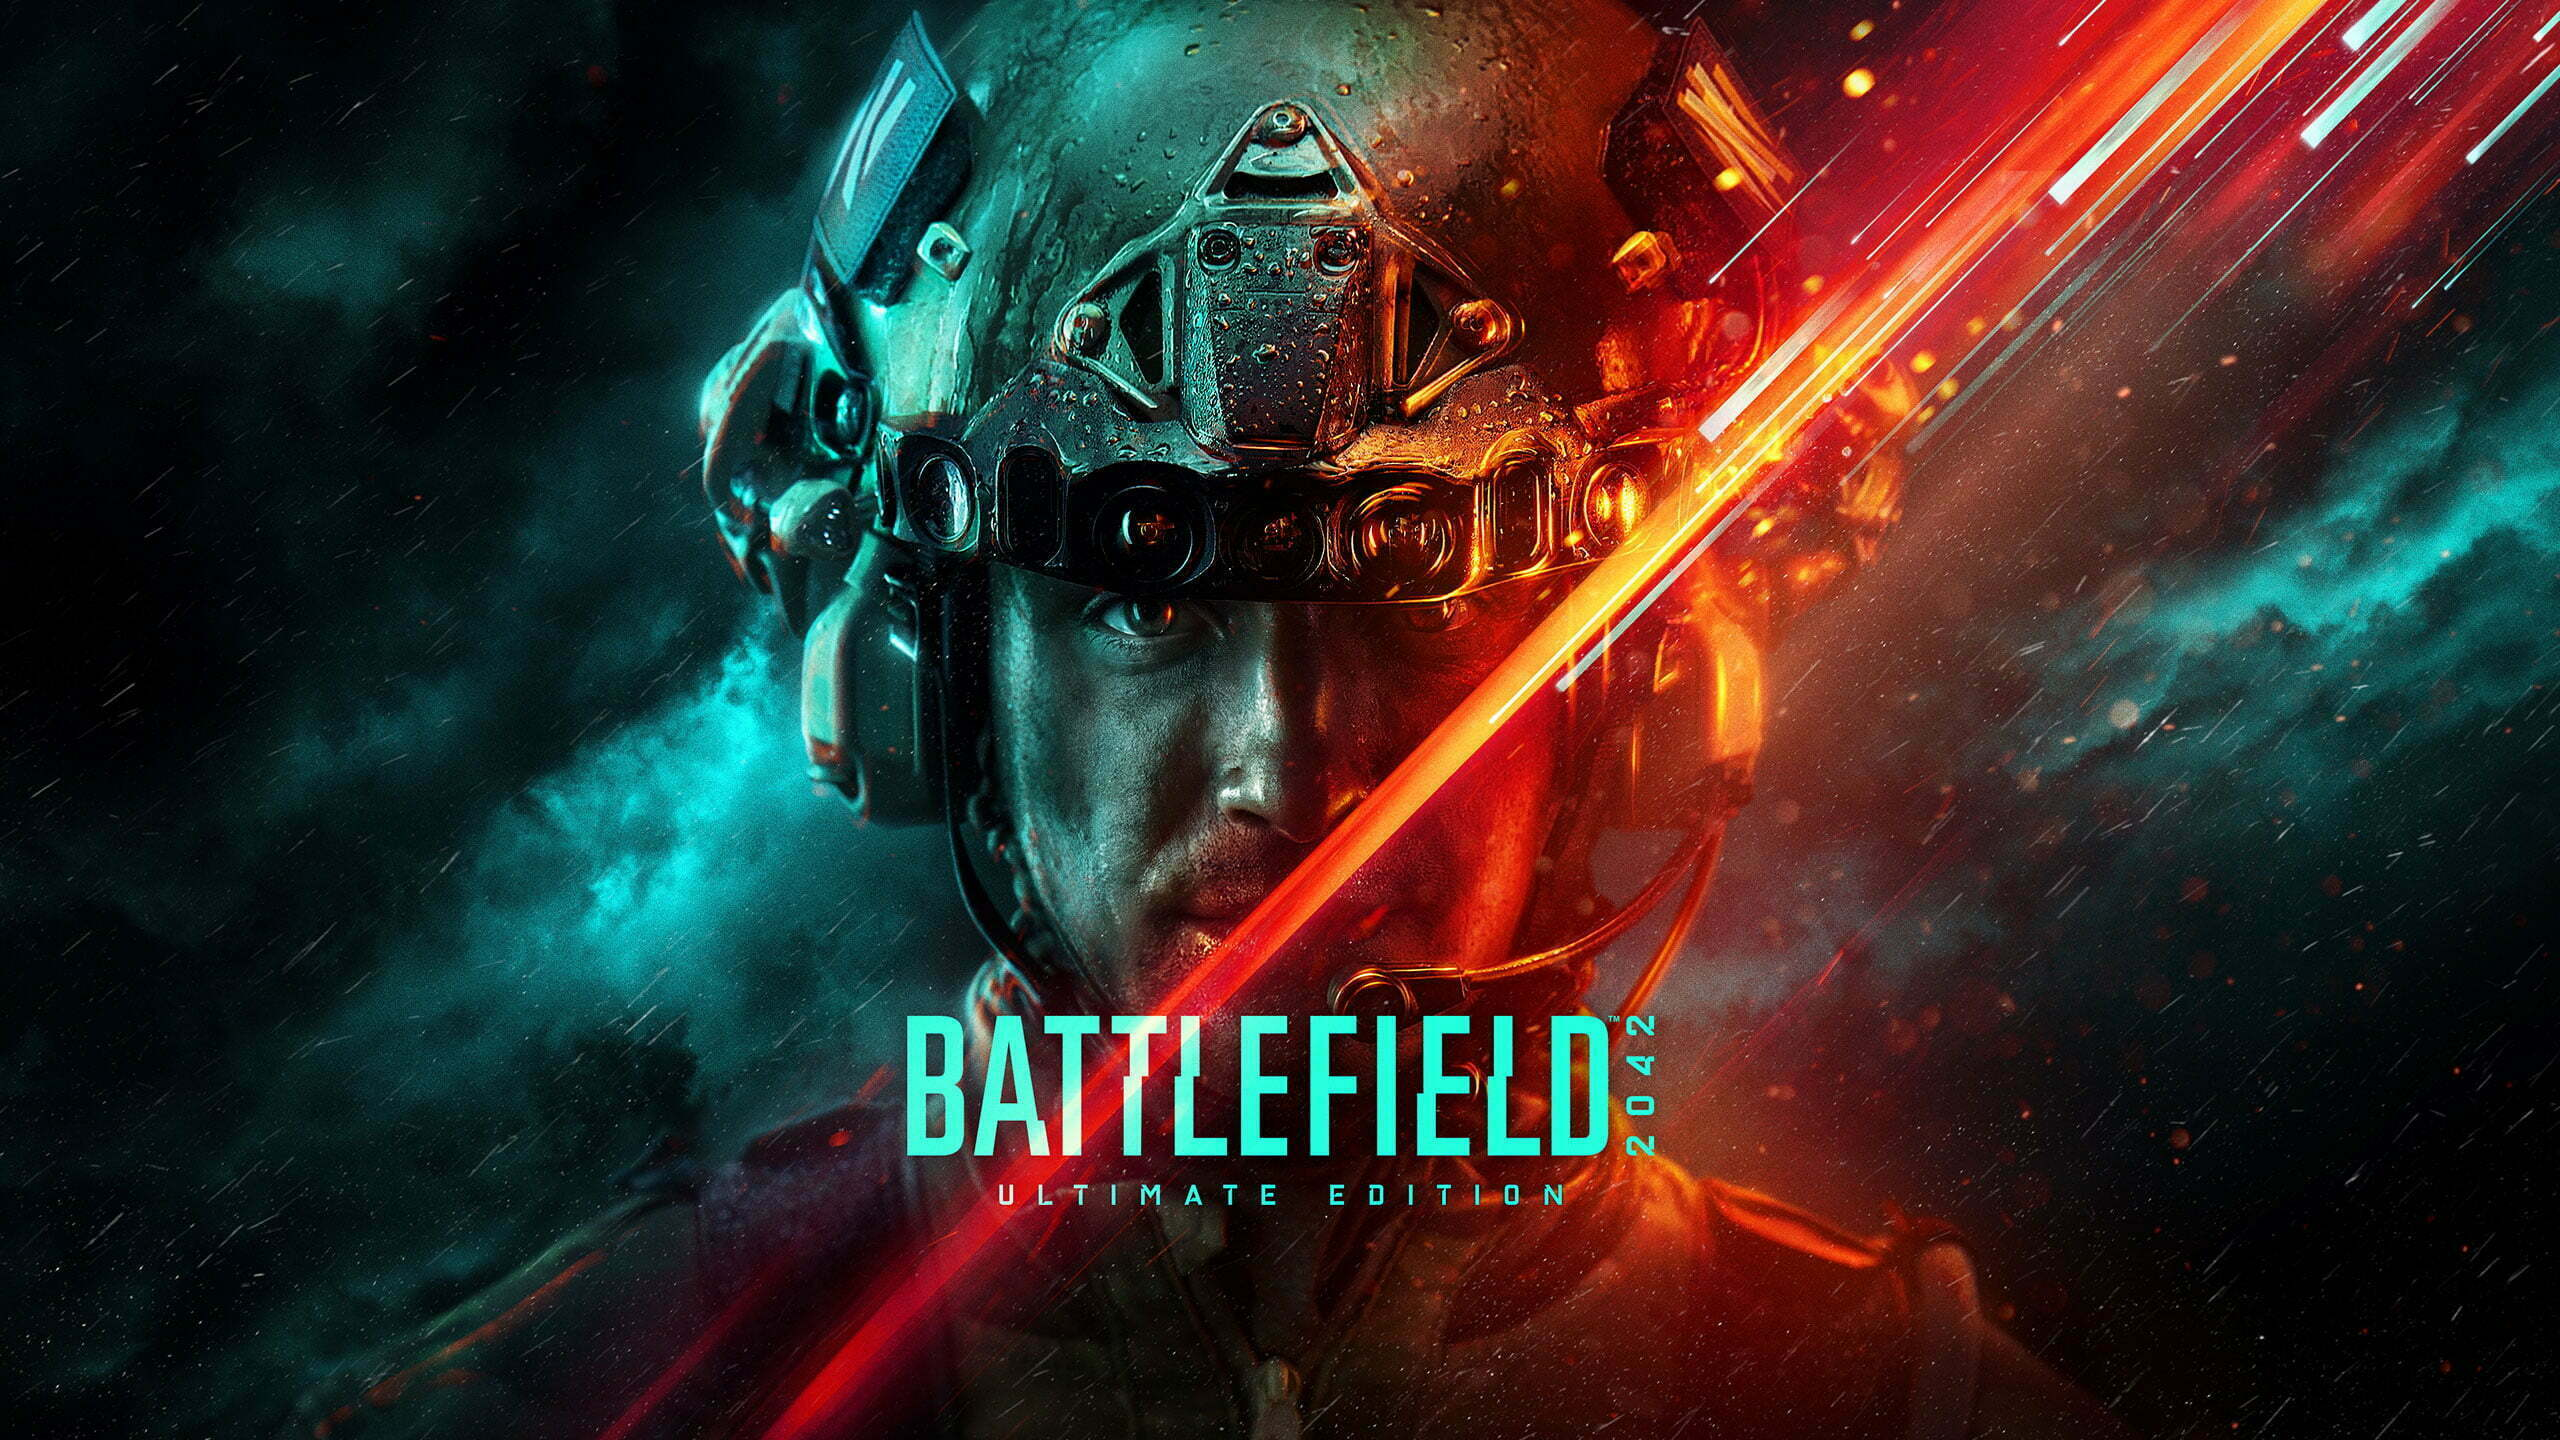 First Gameplay Video of Battlefield 2042 Released Battlefield 2042 System Requirements Announced 1